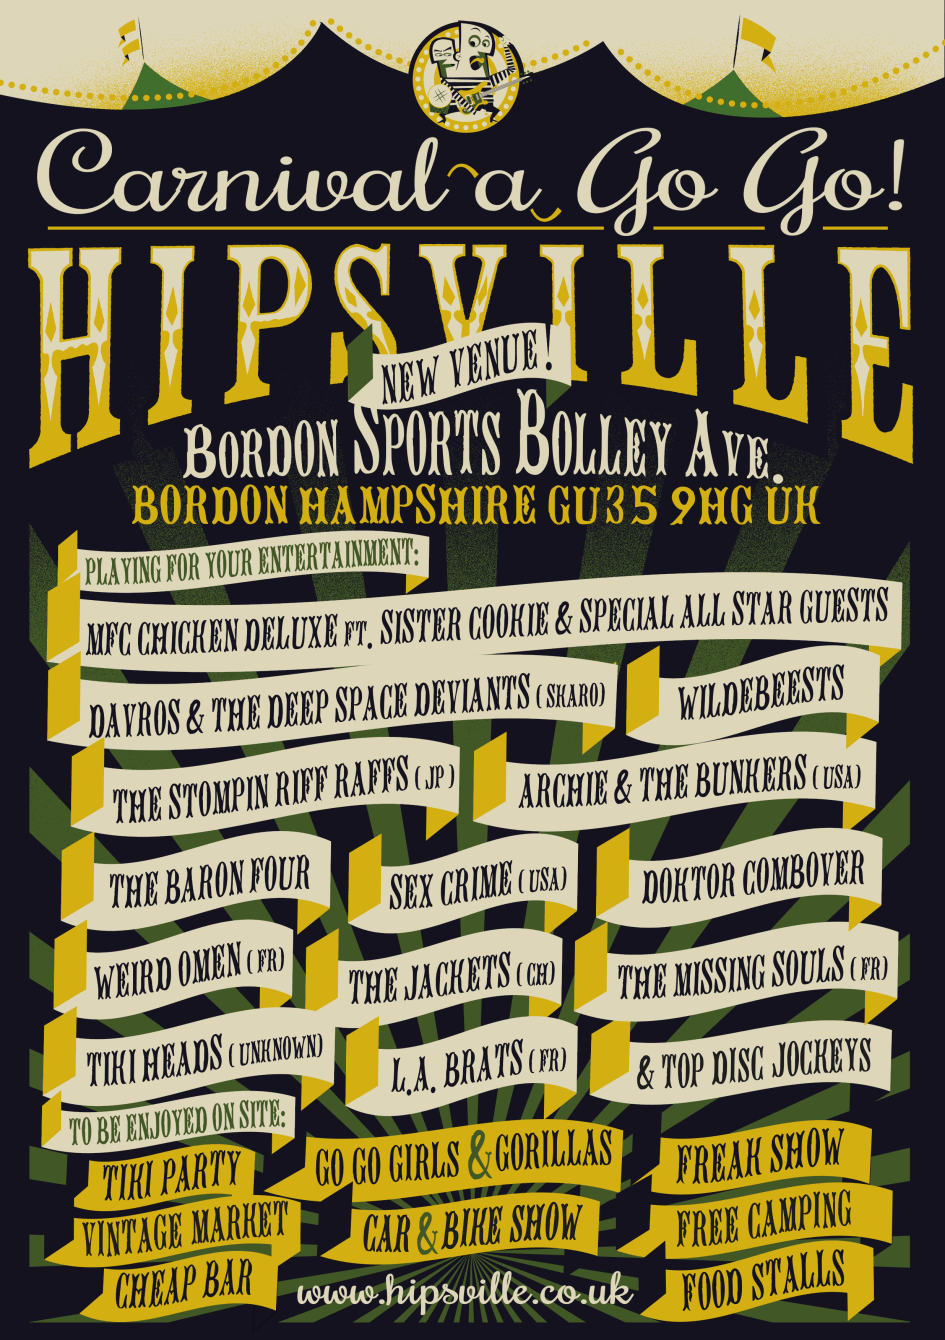 HIPSVILLE Carnival A Go Go! The Wildest '60s & Beyond Party